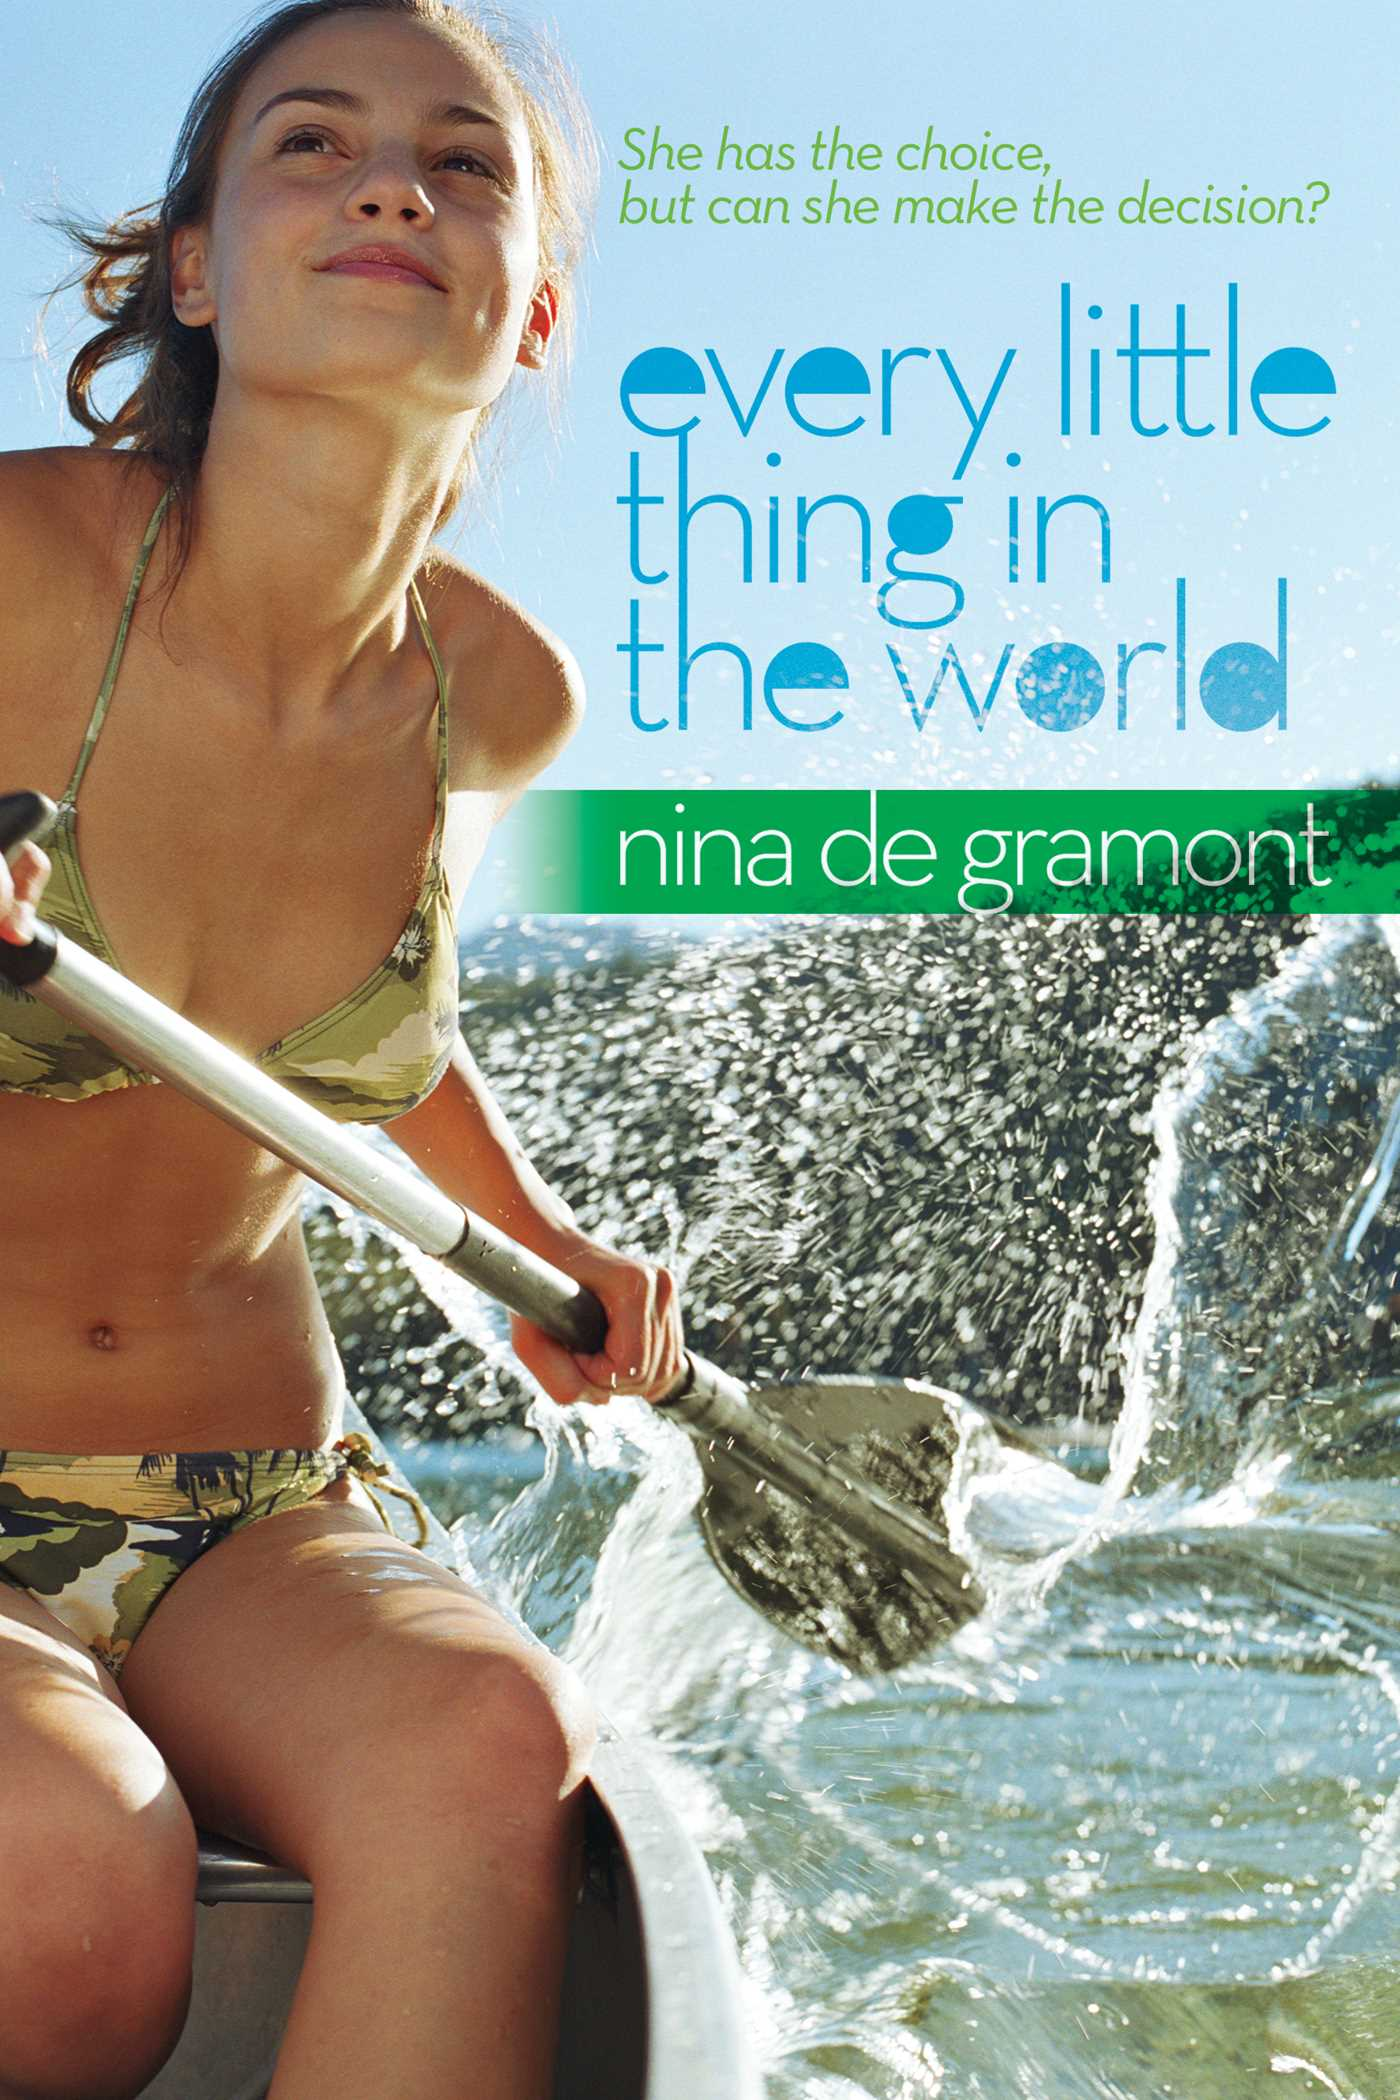 Every little thing in the world 9781416982807 hr